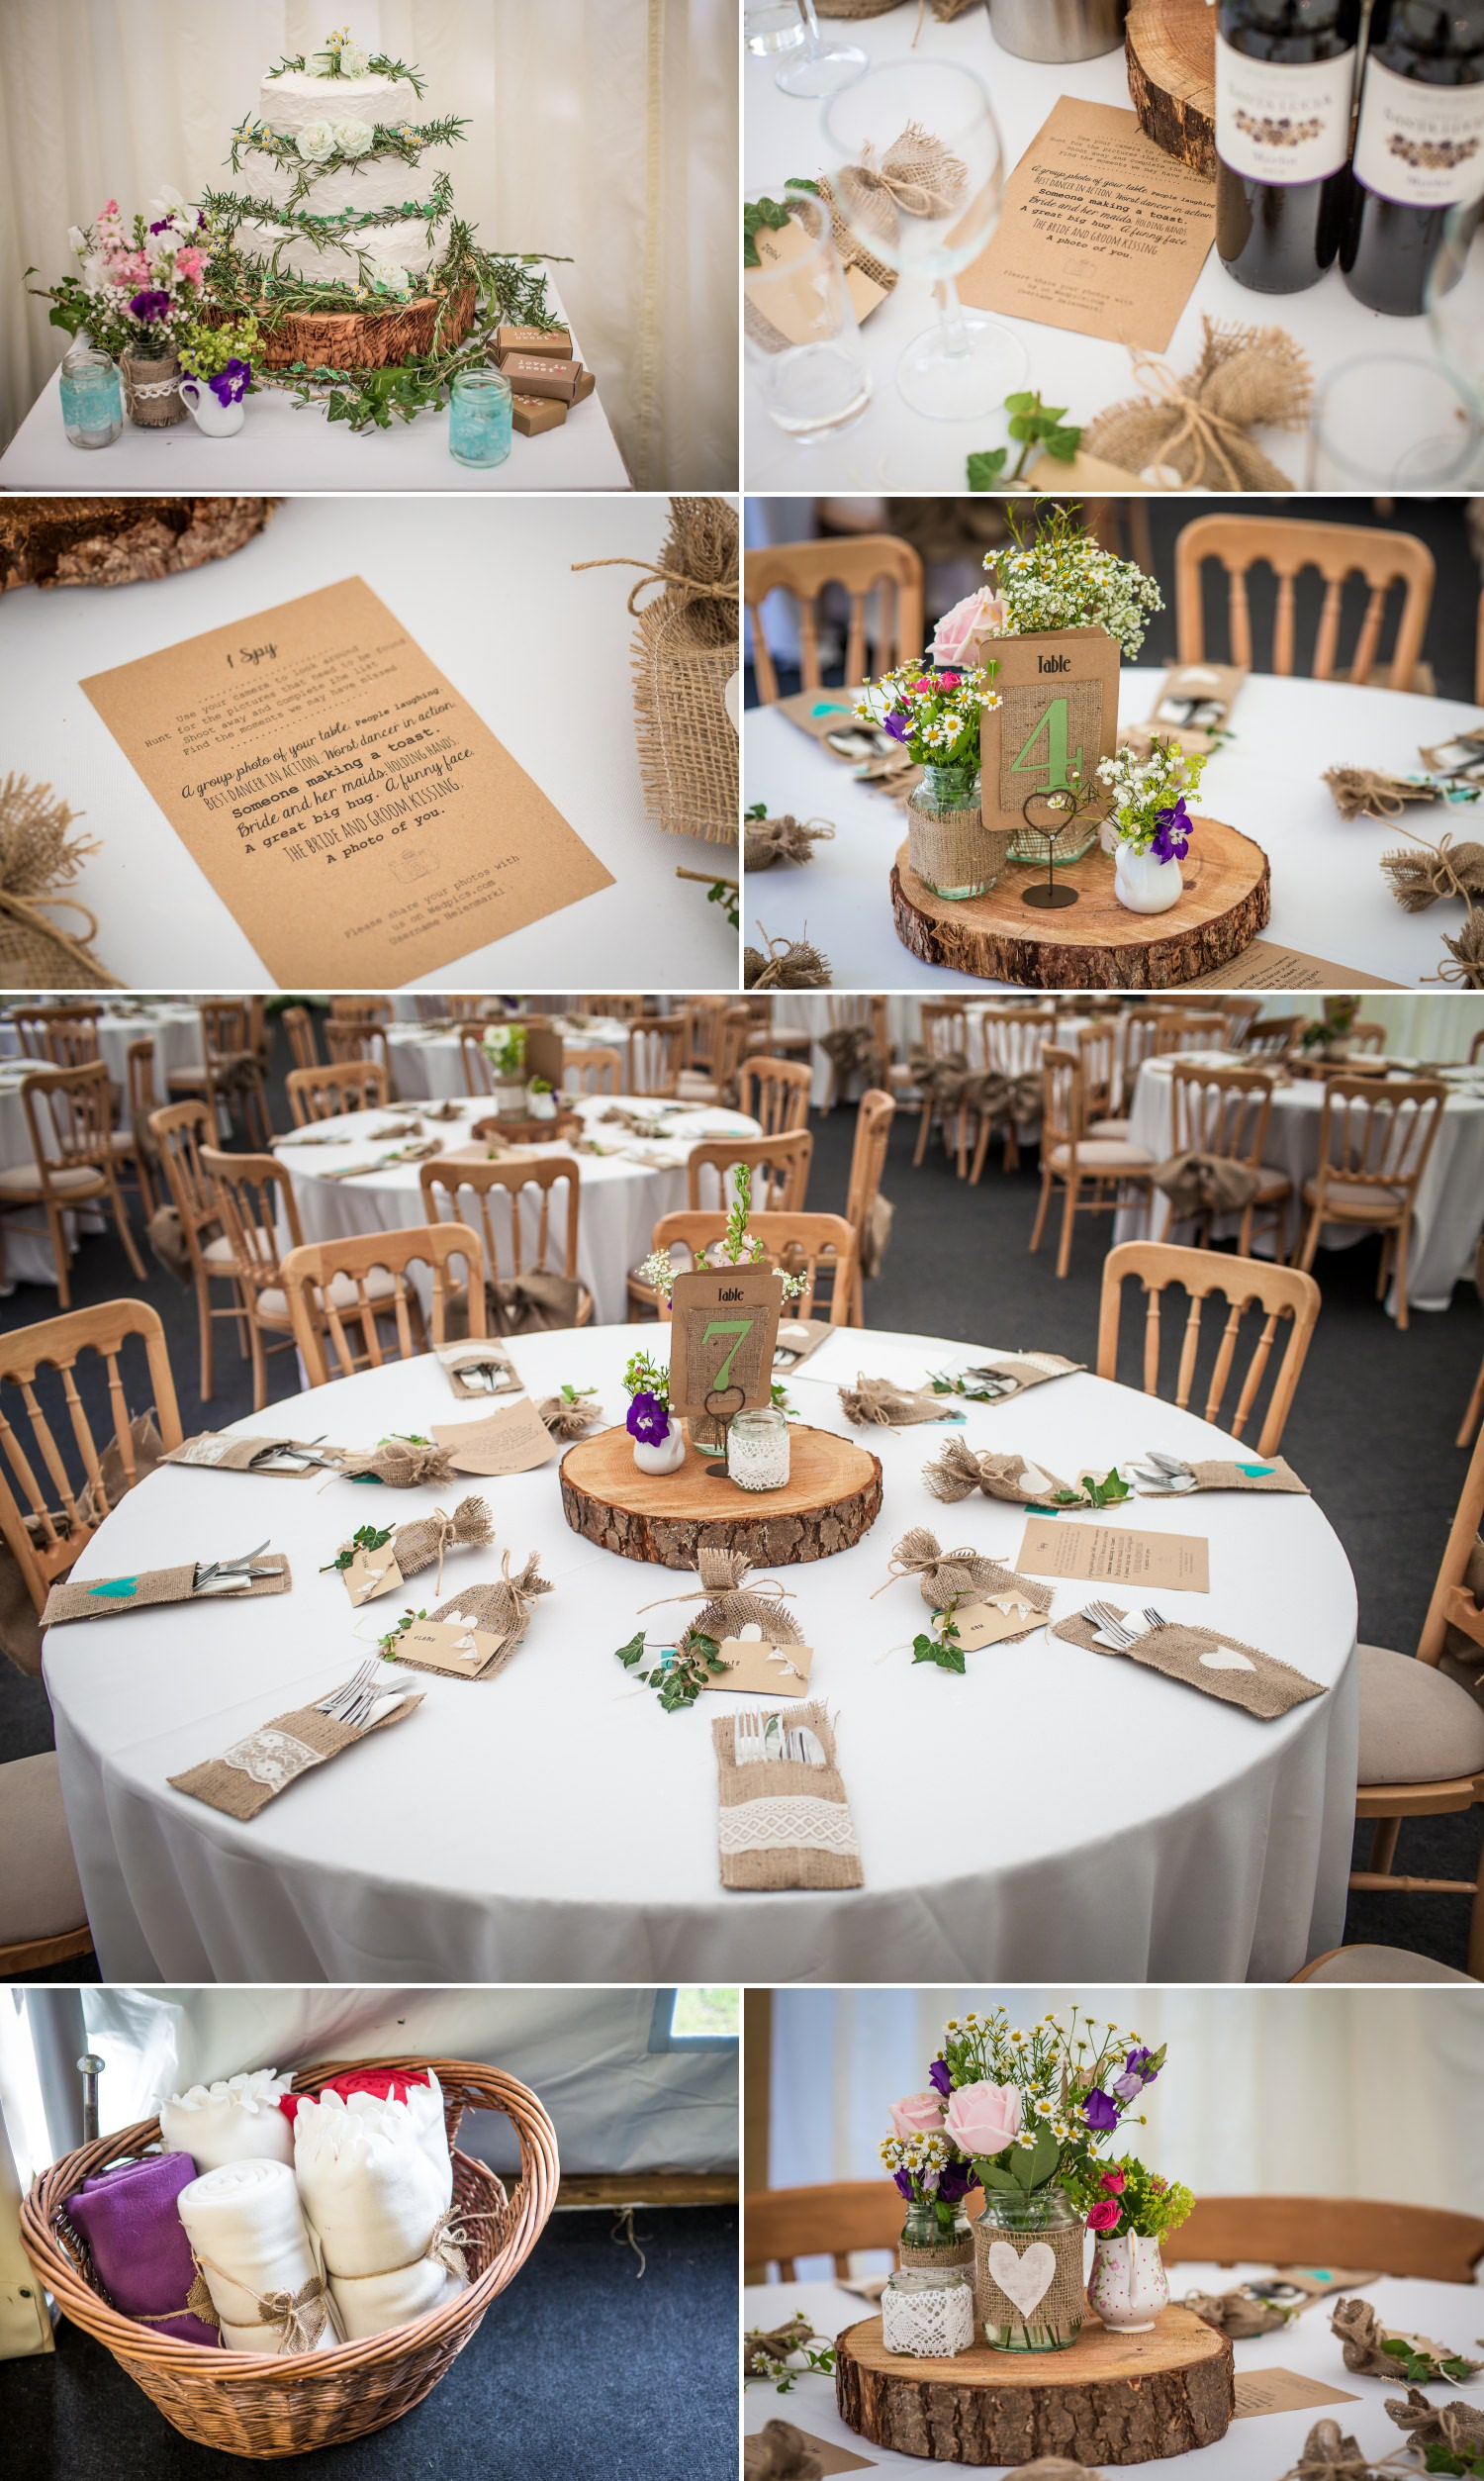 Pentre Mawr Country House Wedding Photograph of hessian table decorations